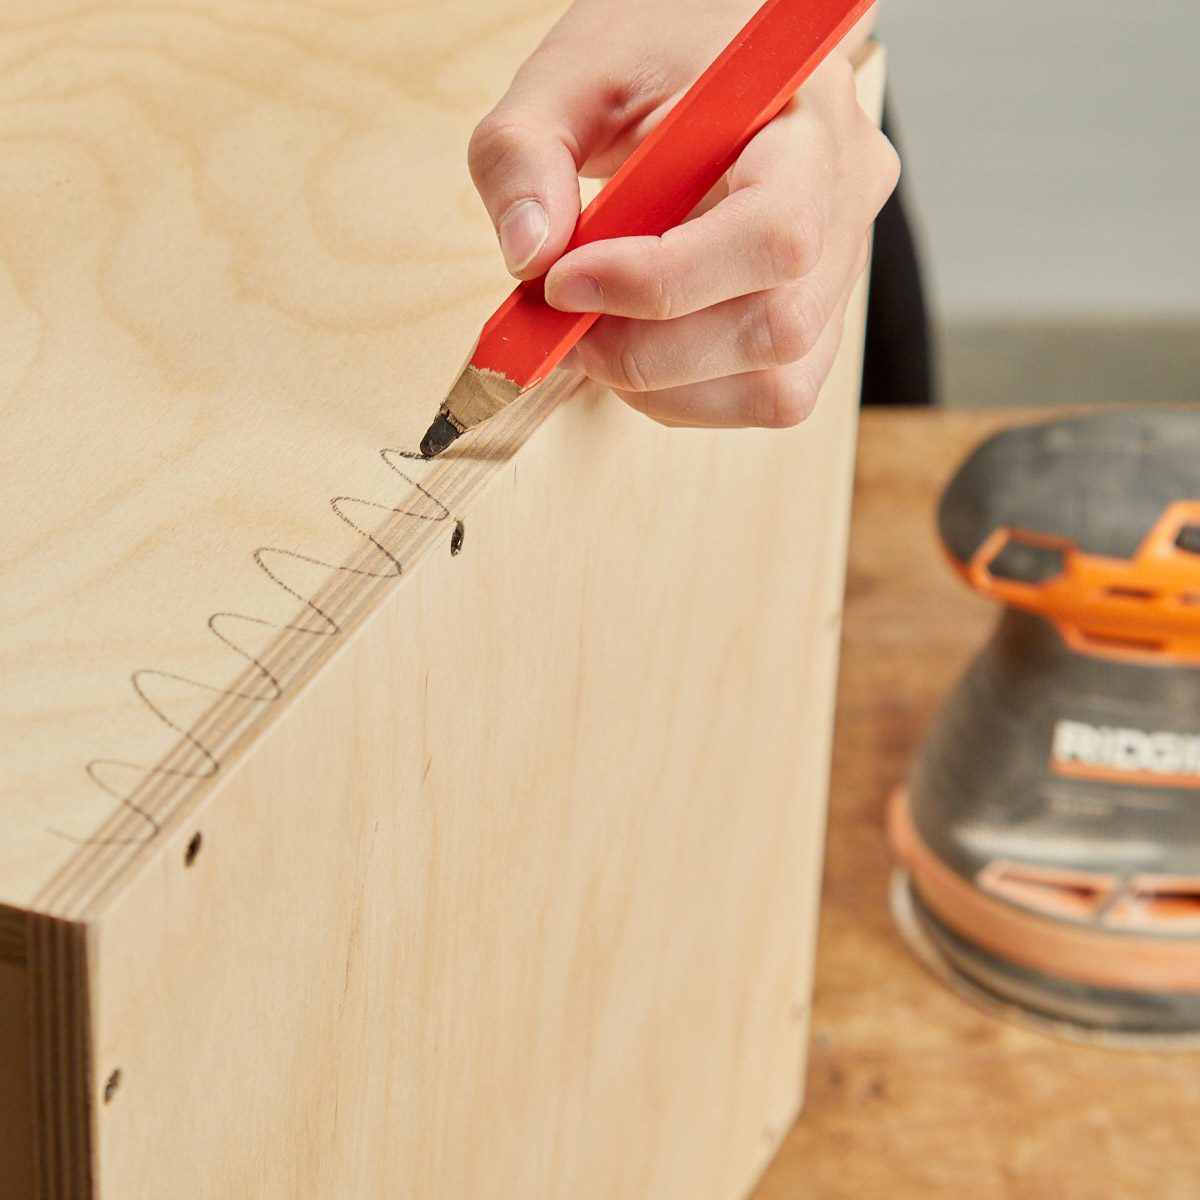 HH sanding even surfaces squiggle line